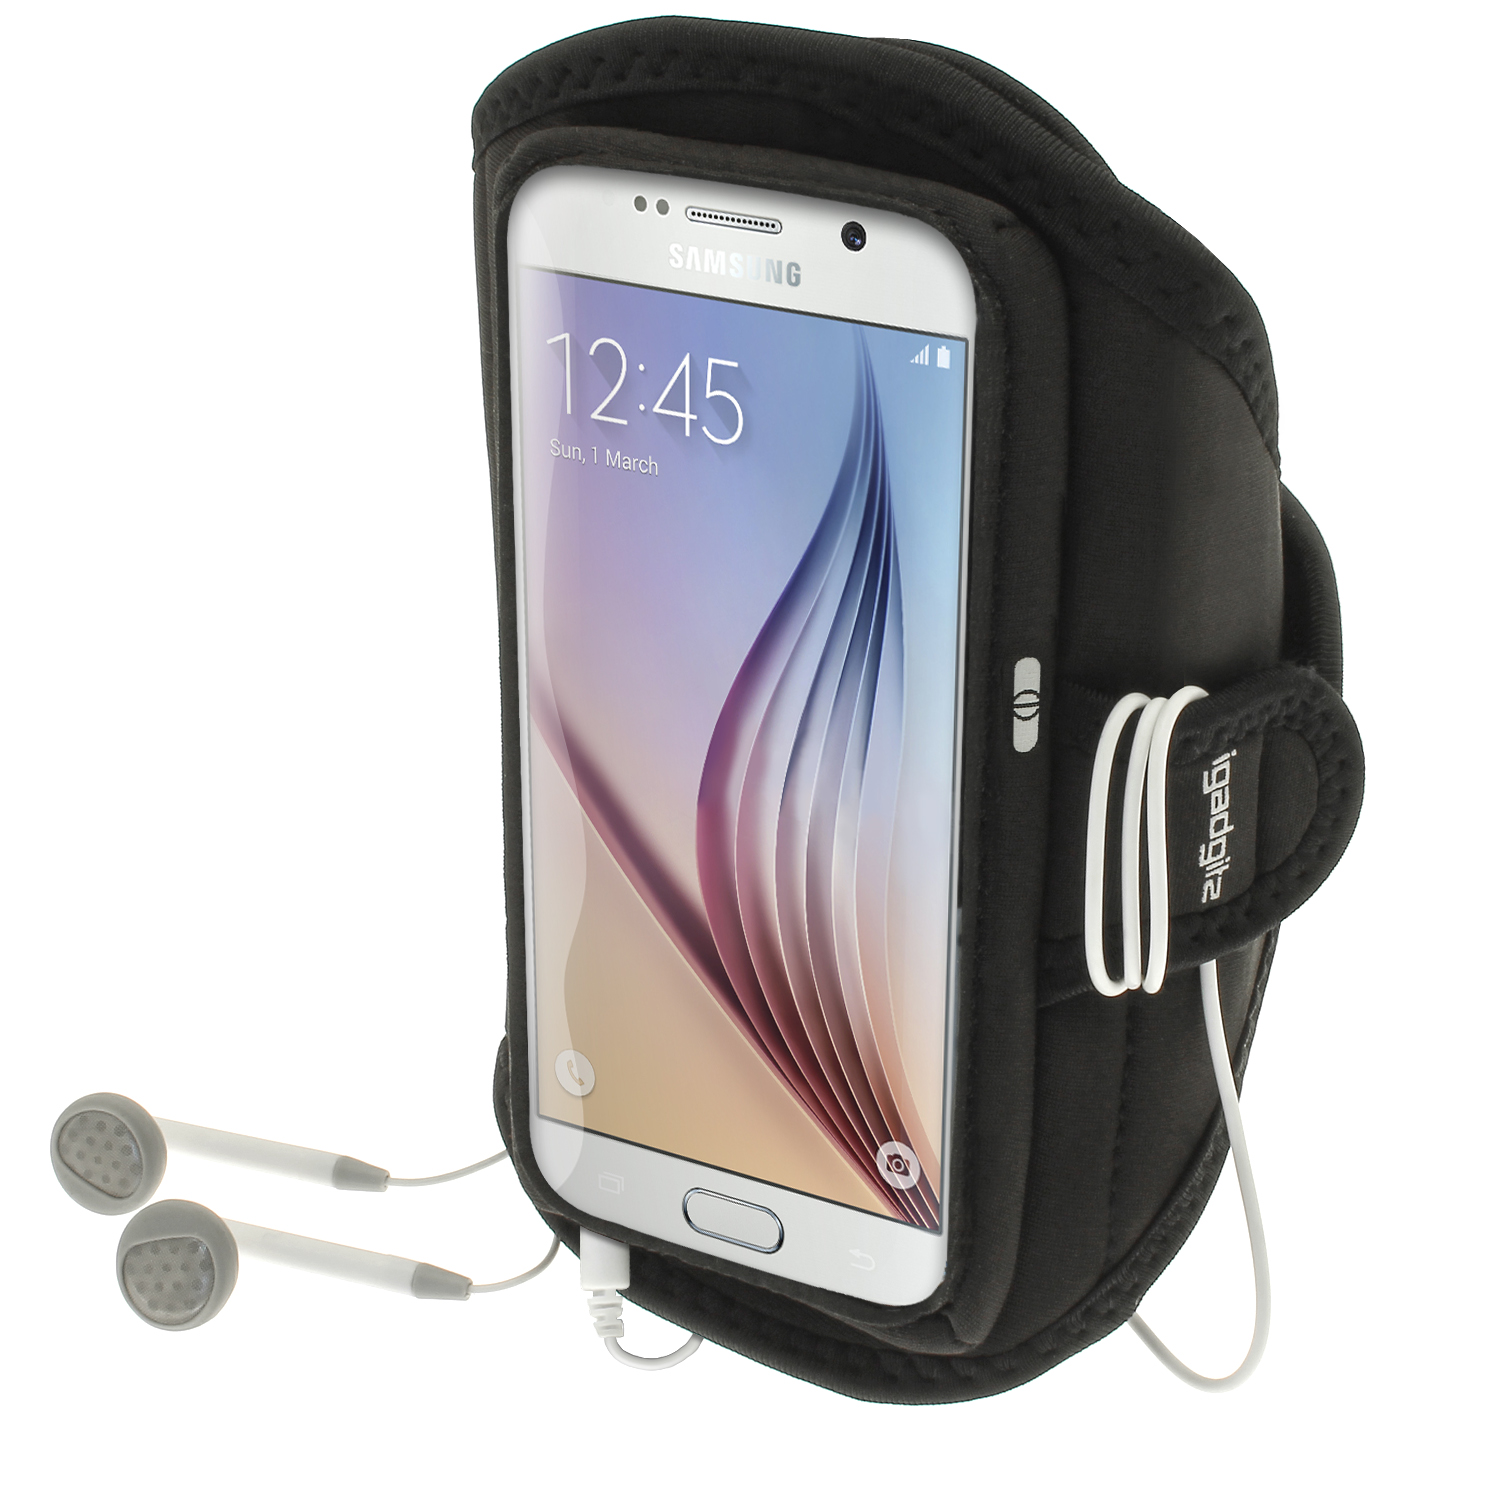 iGadgitz Water Resistant Sports Jogging Gym Armband for Samsung Galaxy S6 SM-G920F & S7 SM-G930